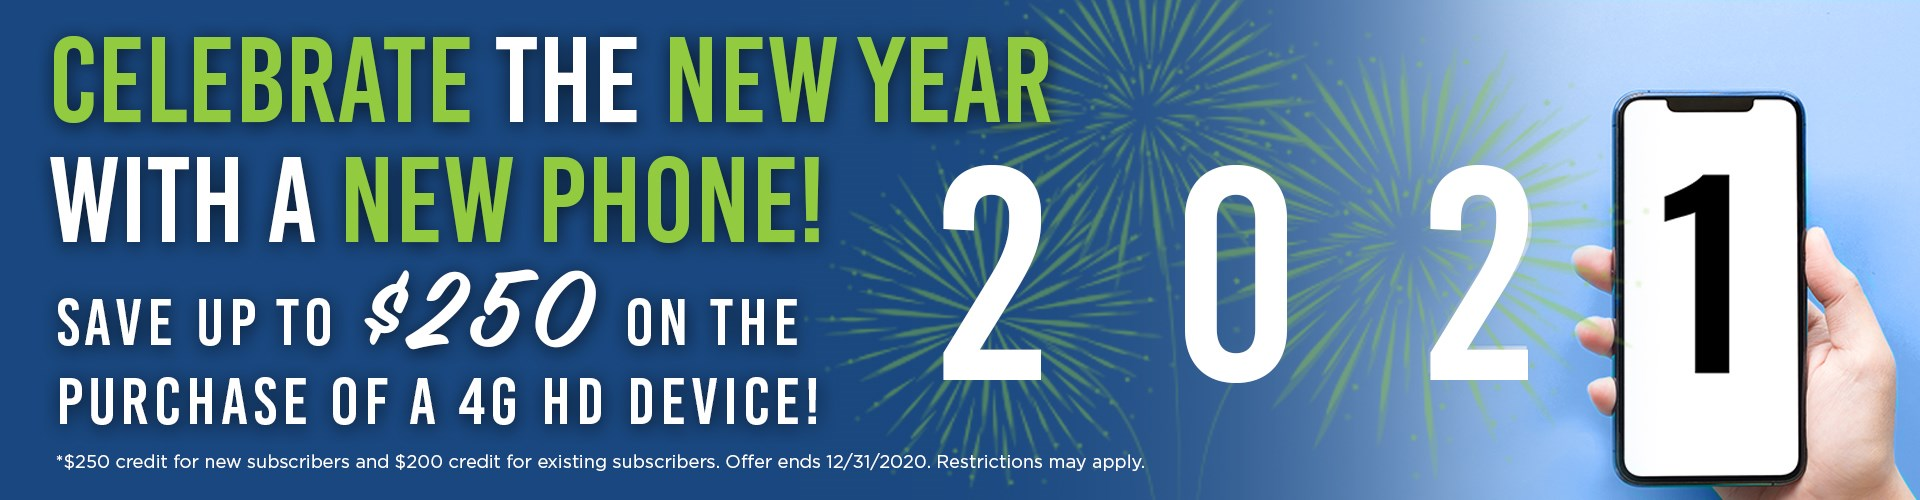 Celebrate the New Year with a NEW Phone!